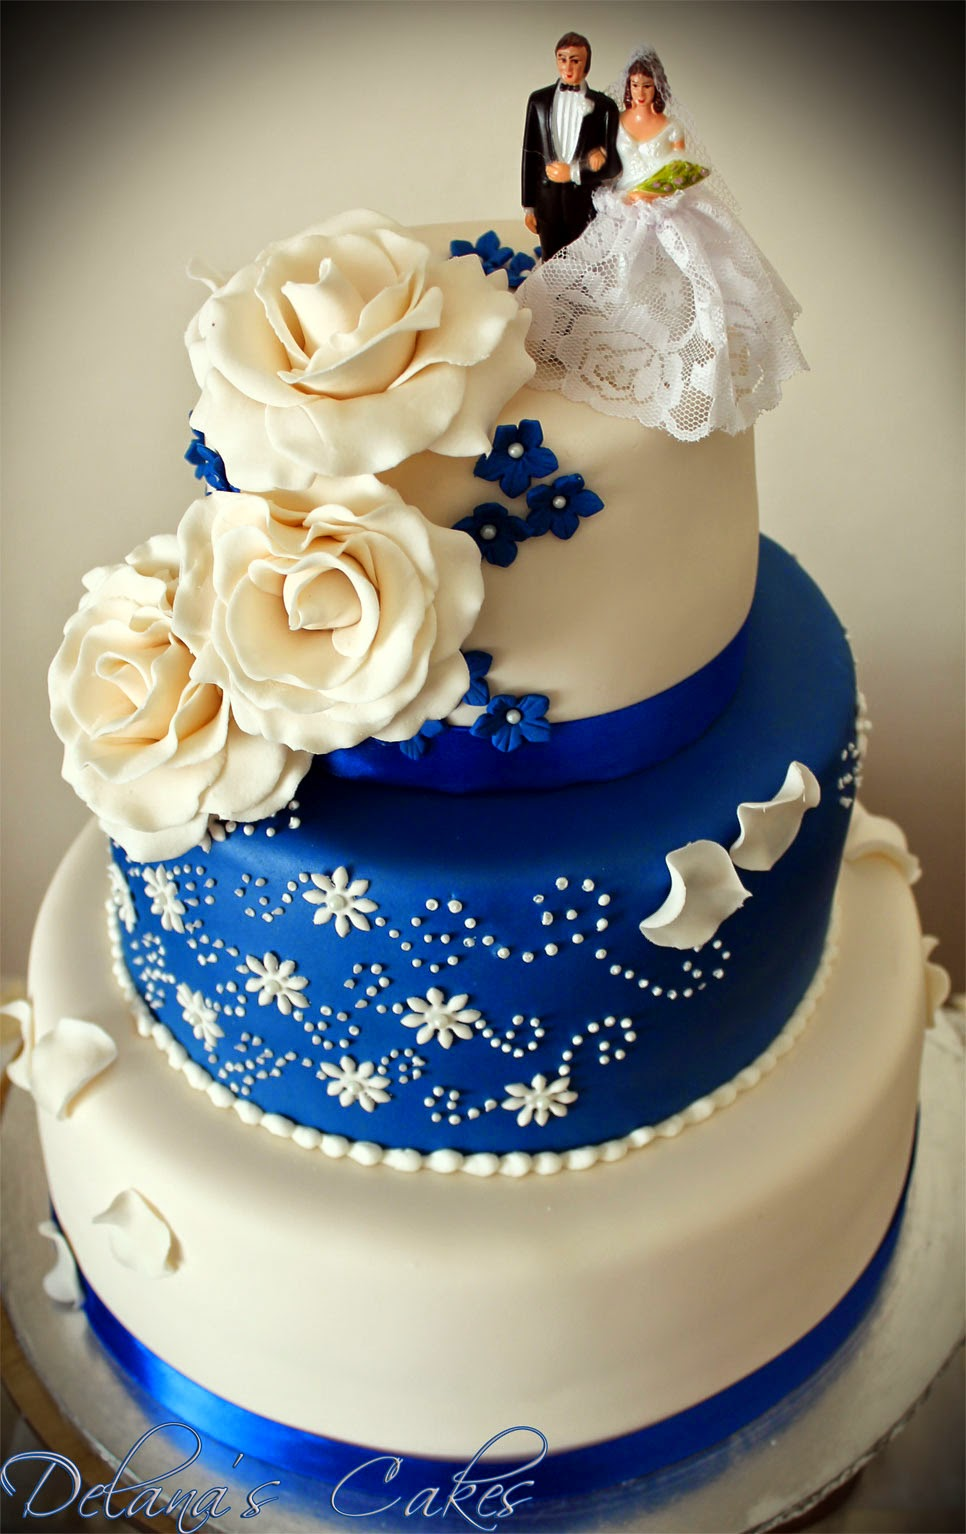 simple royal blue wedding cakes delana s cakes royal blue and white wedding cake 20013